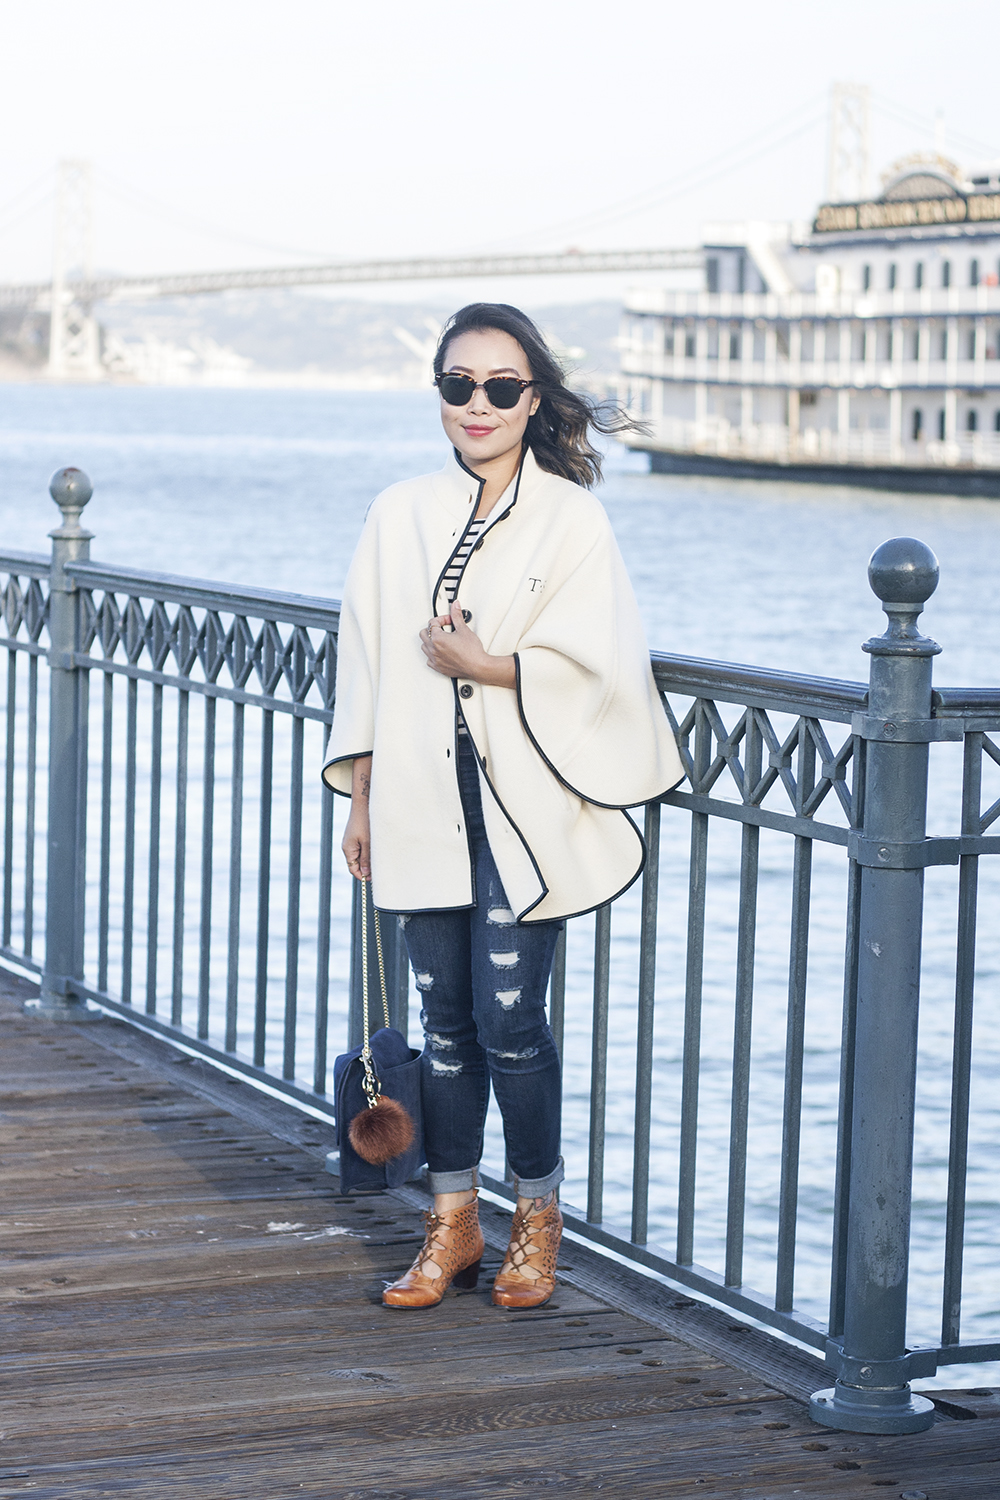 07markandgraham-sf-sanfrancisco-pier-cape-fall-style-fashion